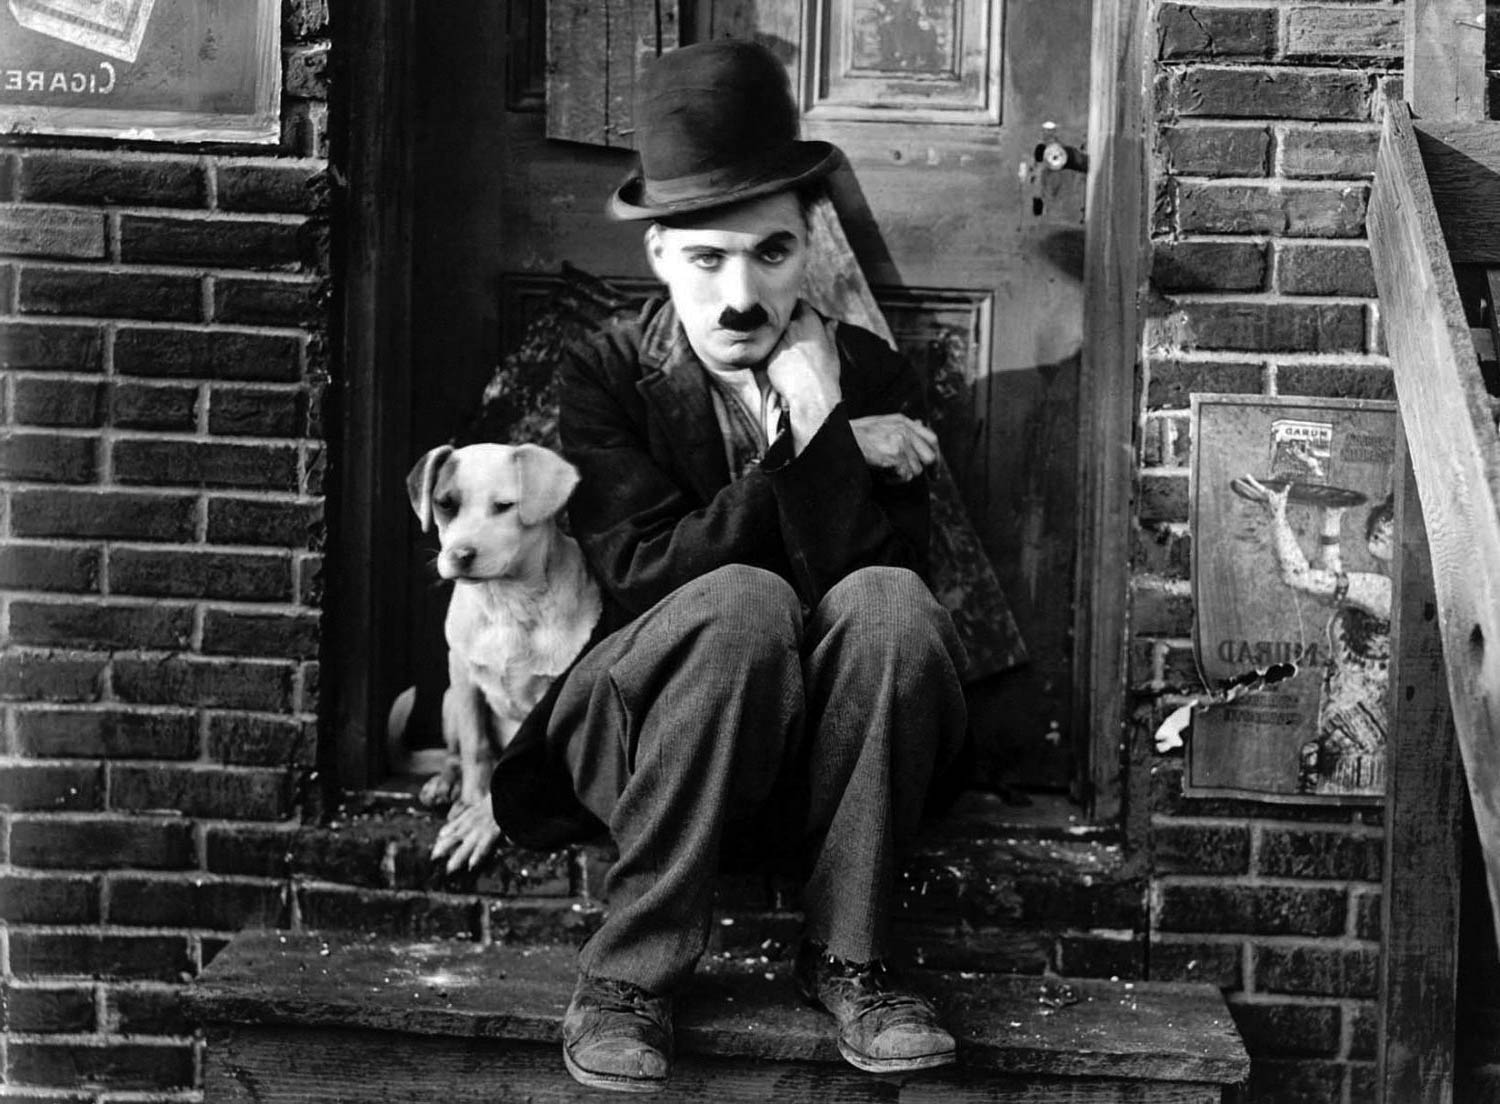 New Hollywood Movies Hd Wallpapers Charlie Chaplin Classic Hd Wallpapers 2017 Collection